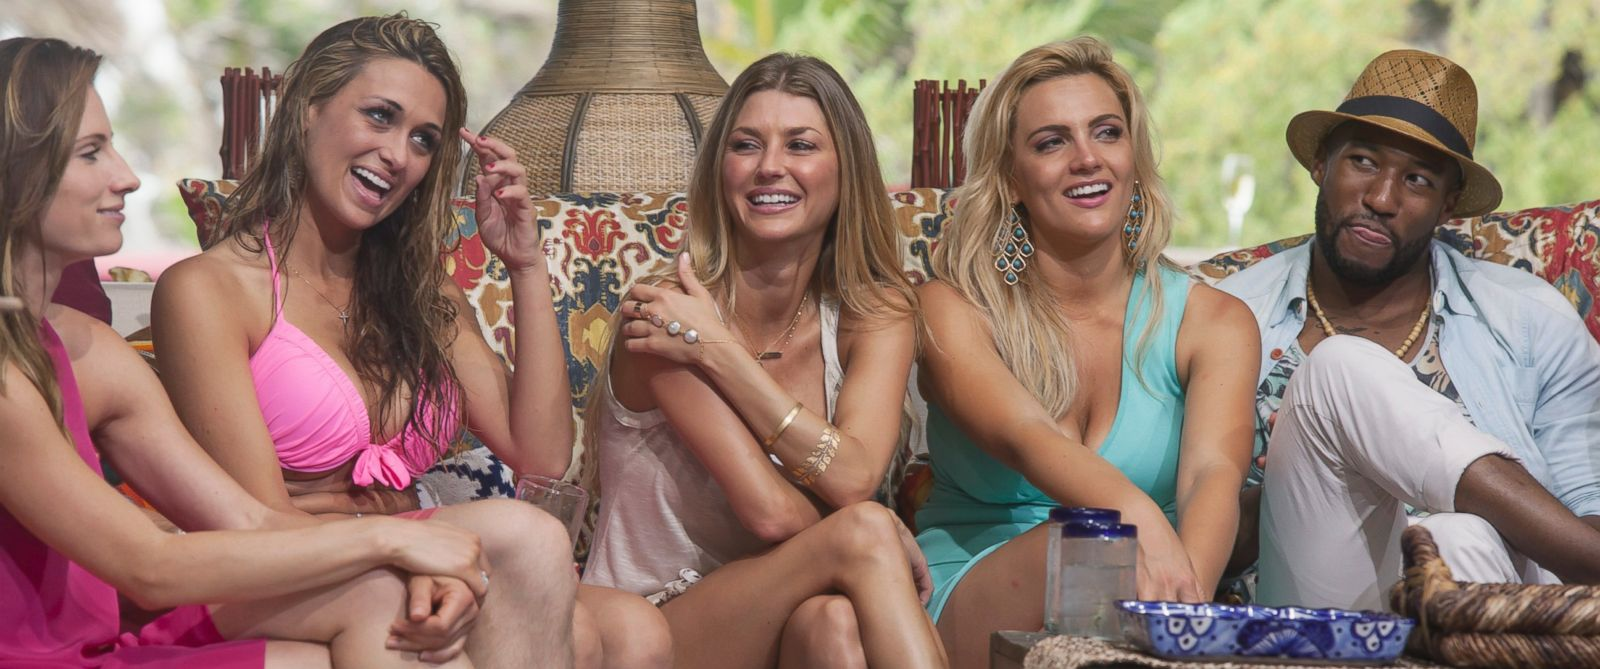 """PHOTO: This summer, 25 of """"The Bachelors"""" biggest stars and most controversial contestants are back looking for a second chance at love on """"Bachelor in Paradise."""""""